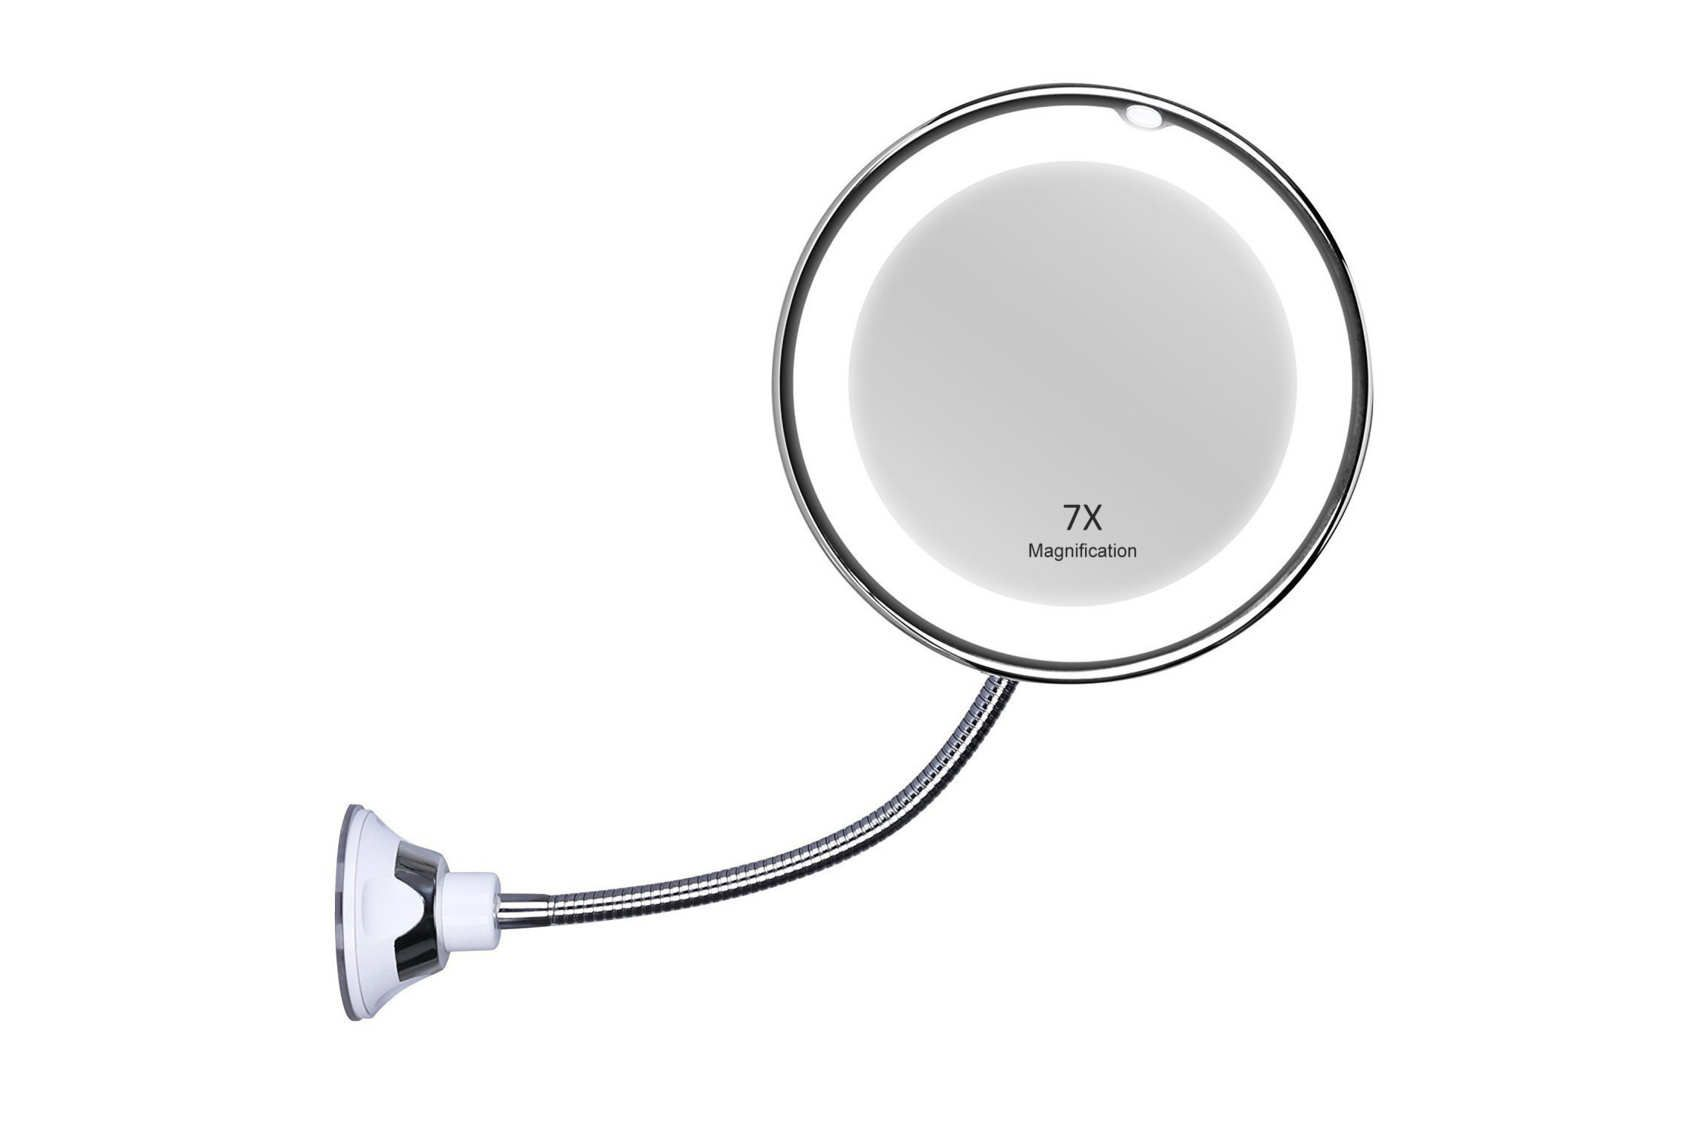 The Best Lighted Makeup Mirrors On Amazon According To